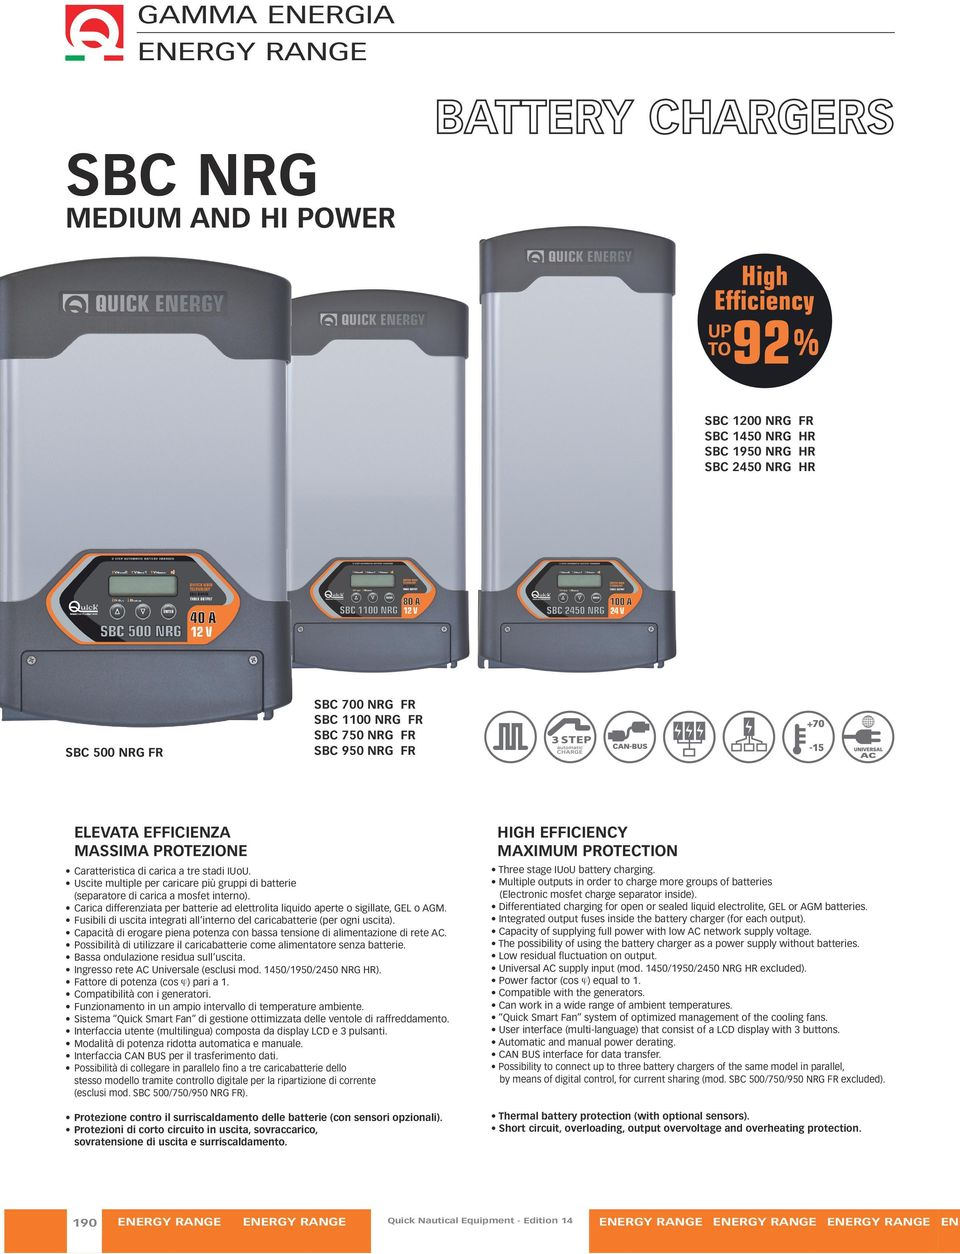 CARICA BATTERIA BARCA QUICK SBC NRG250 25A USCITE 3 BATTERY CHARGES 25 AMPERE